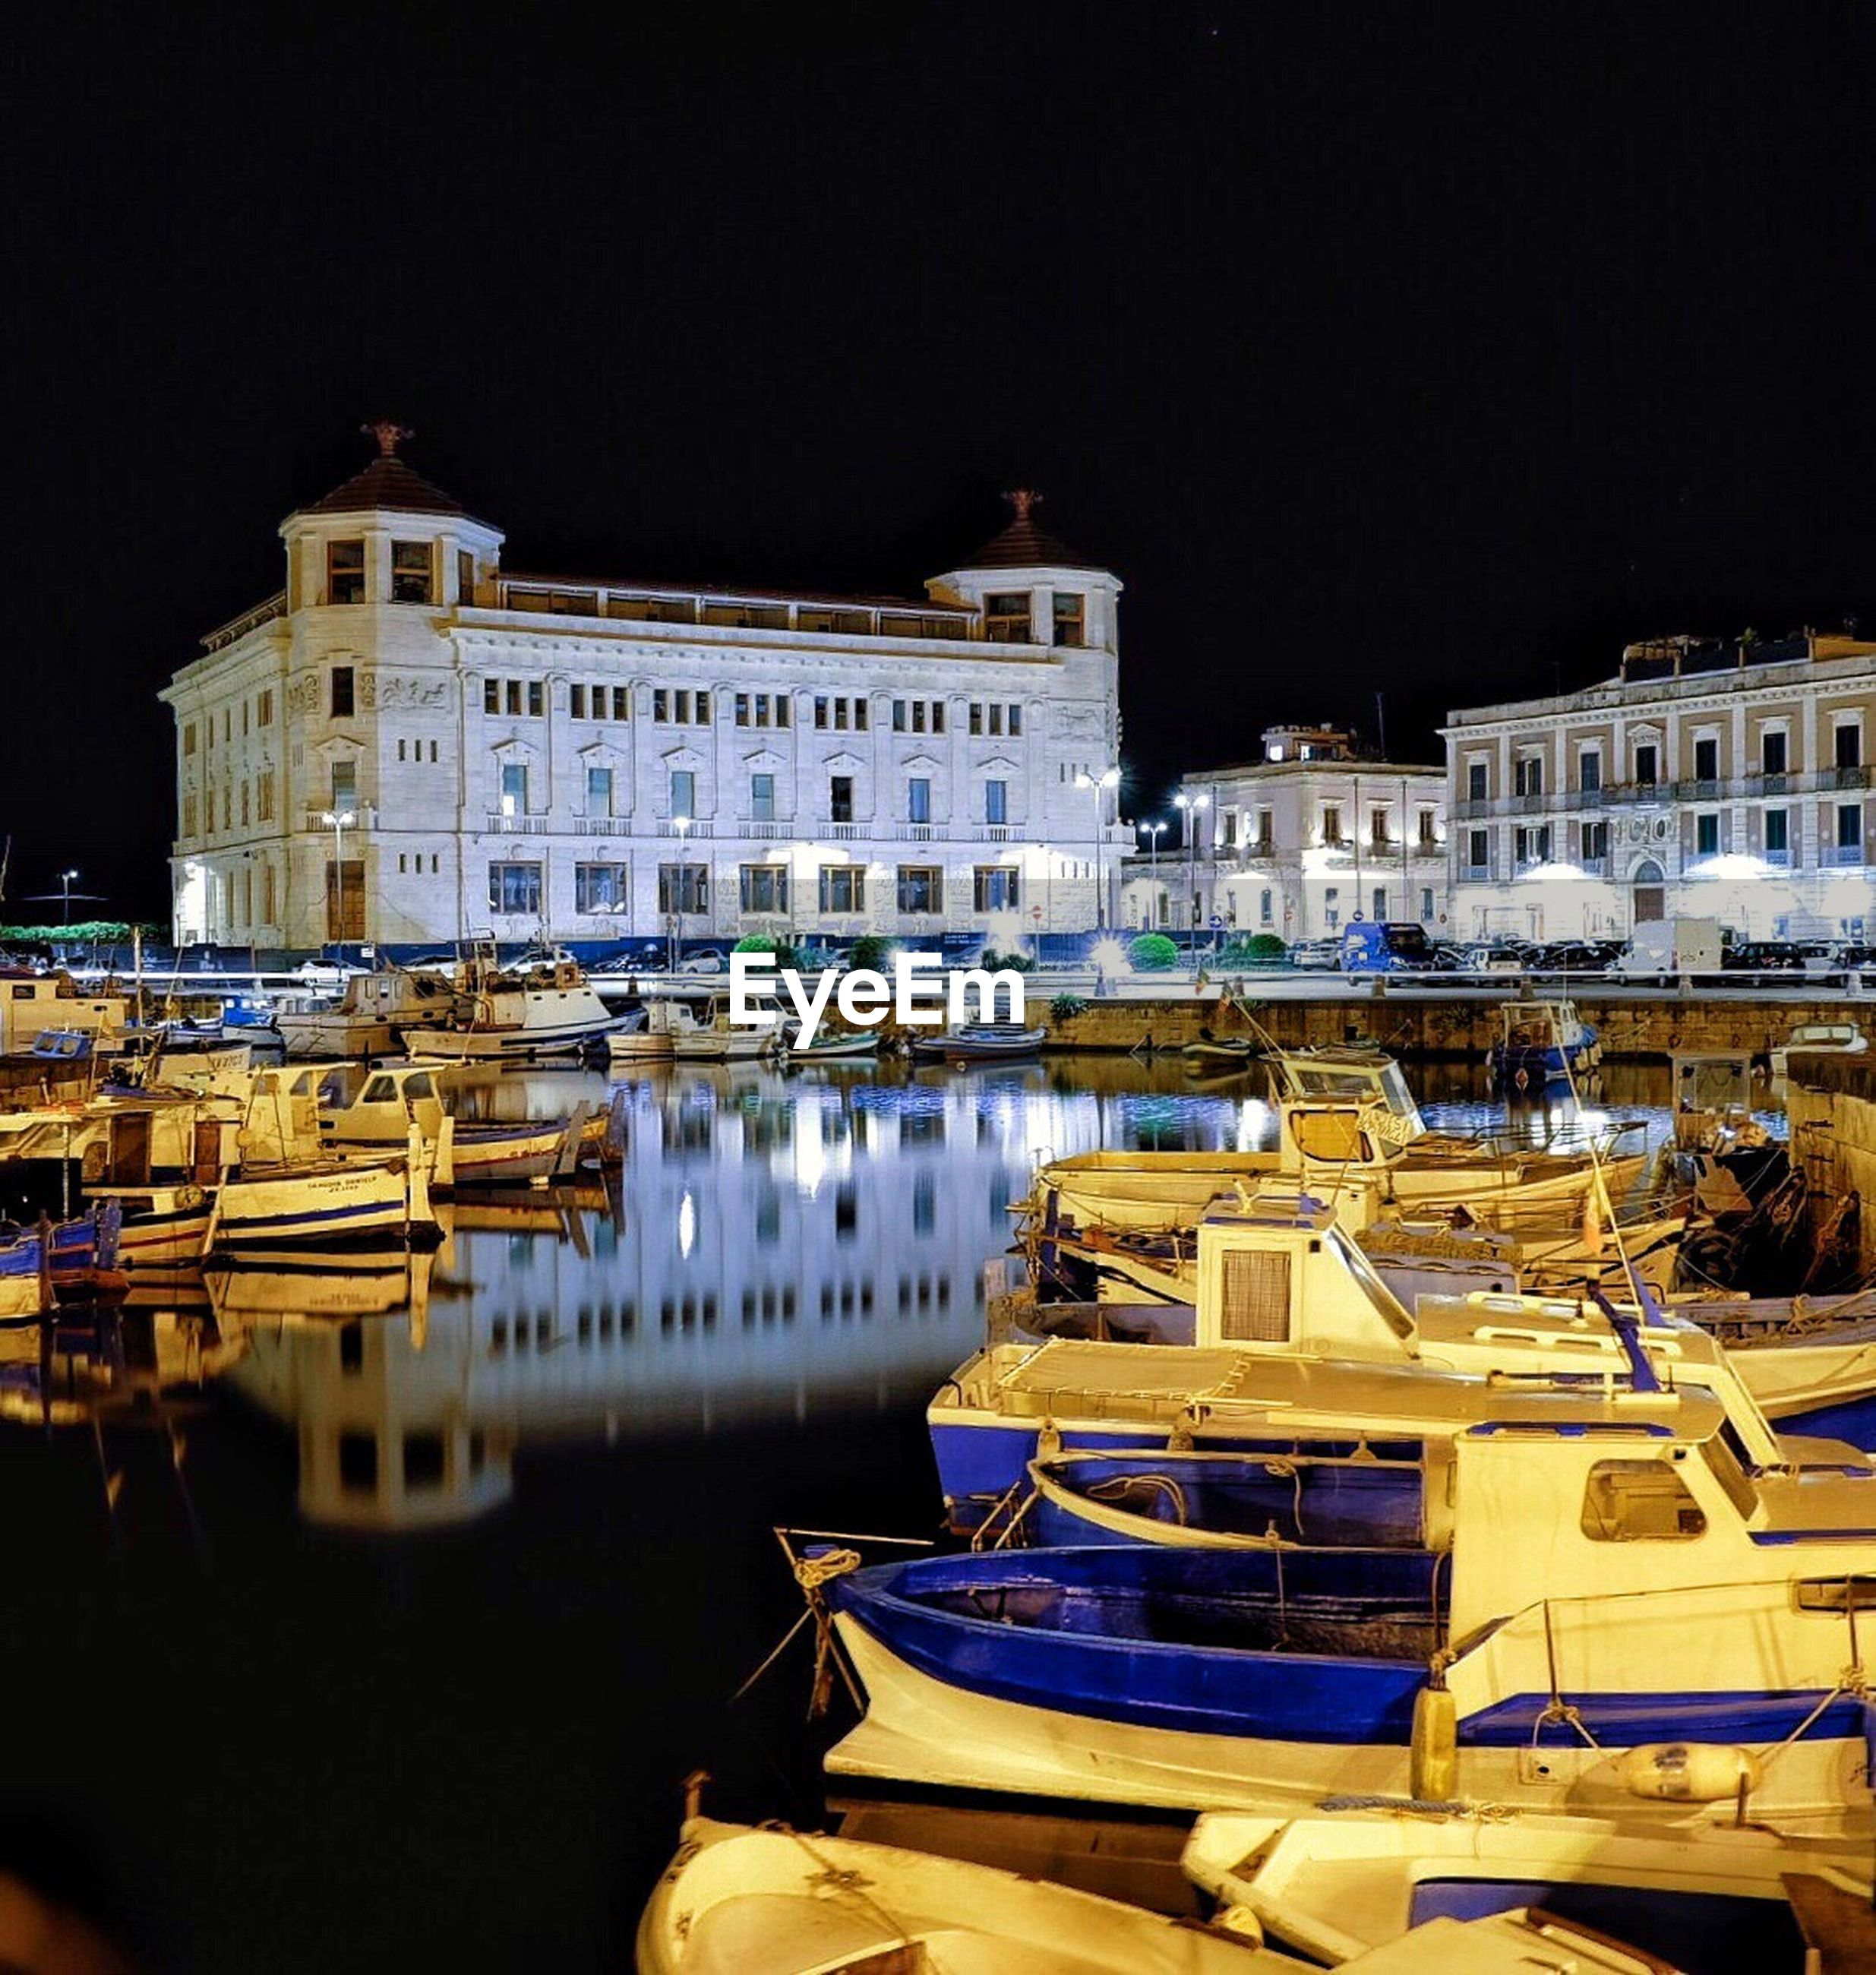 BOATS MOORED IN FRONT OF LAKE AT NIGHT